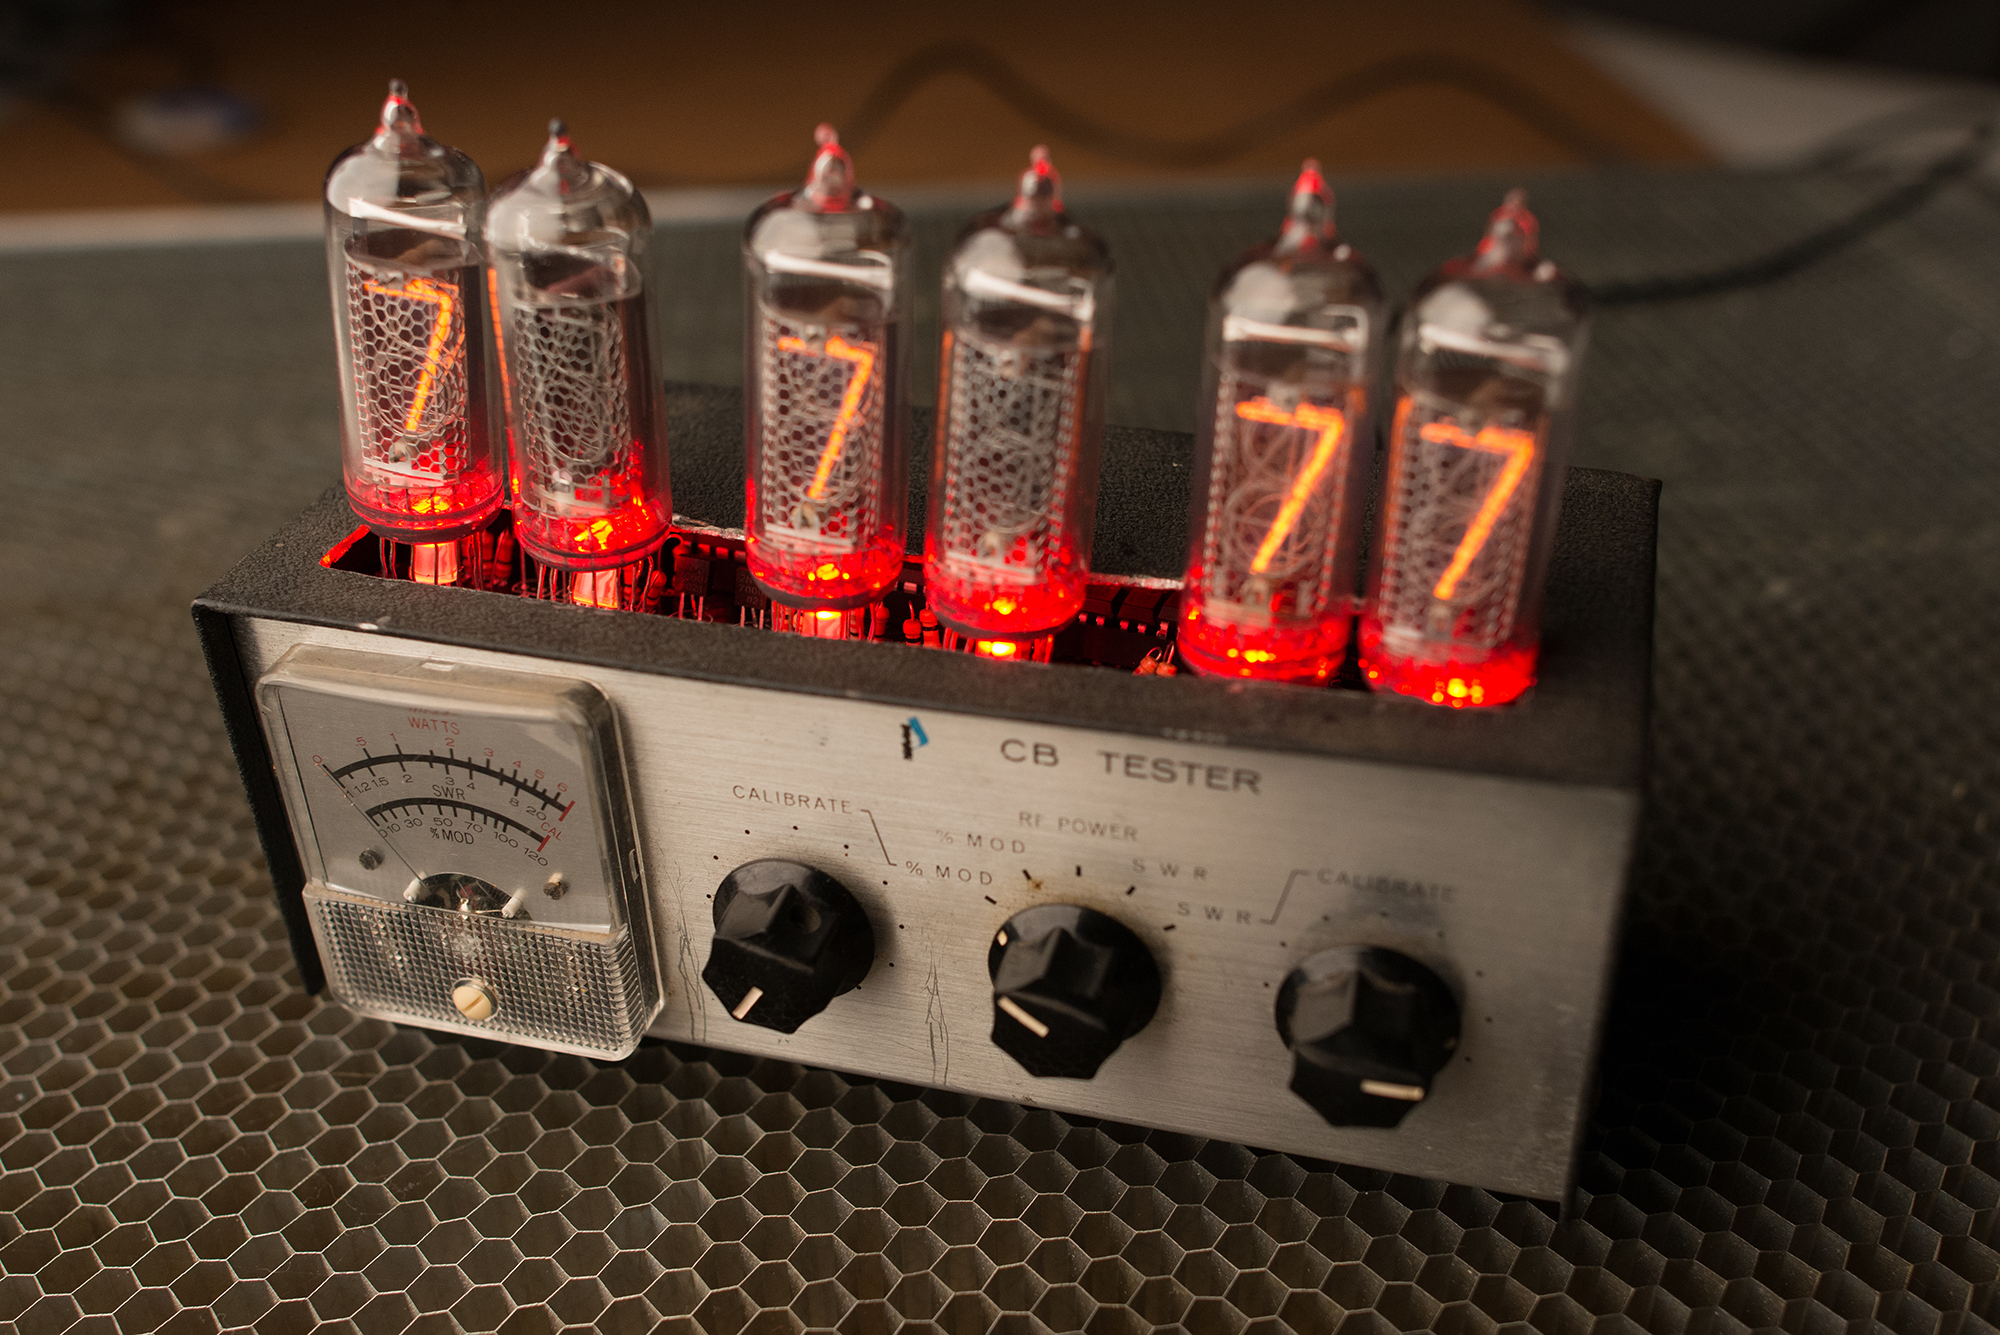 DIY Nixie Tube Clock Build - News - SparkFun Electronics